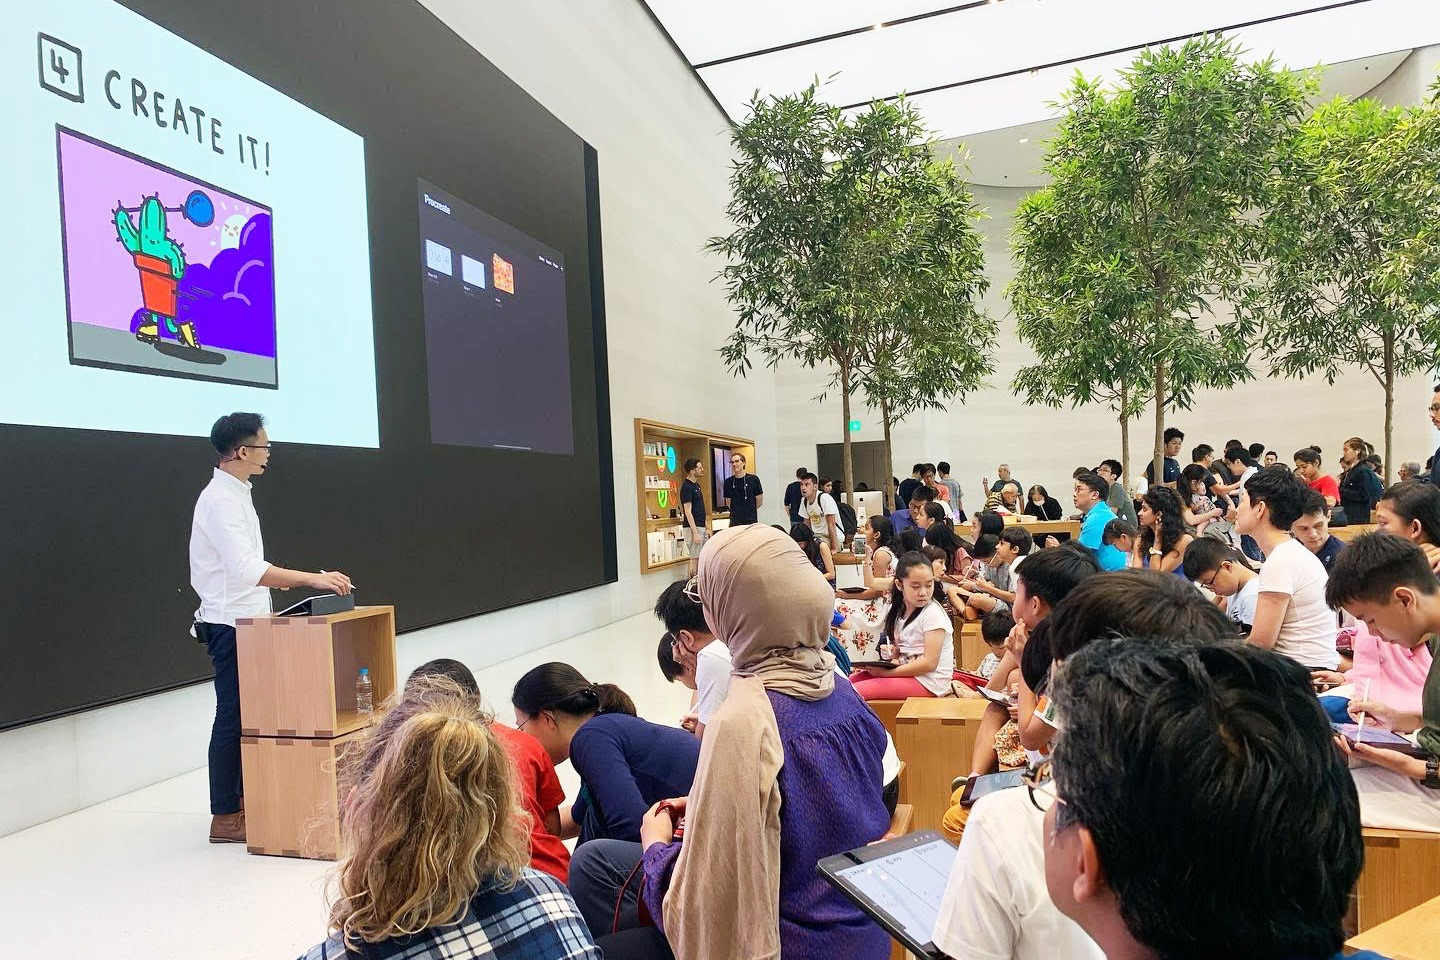 Today at Apple Workshop